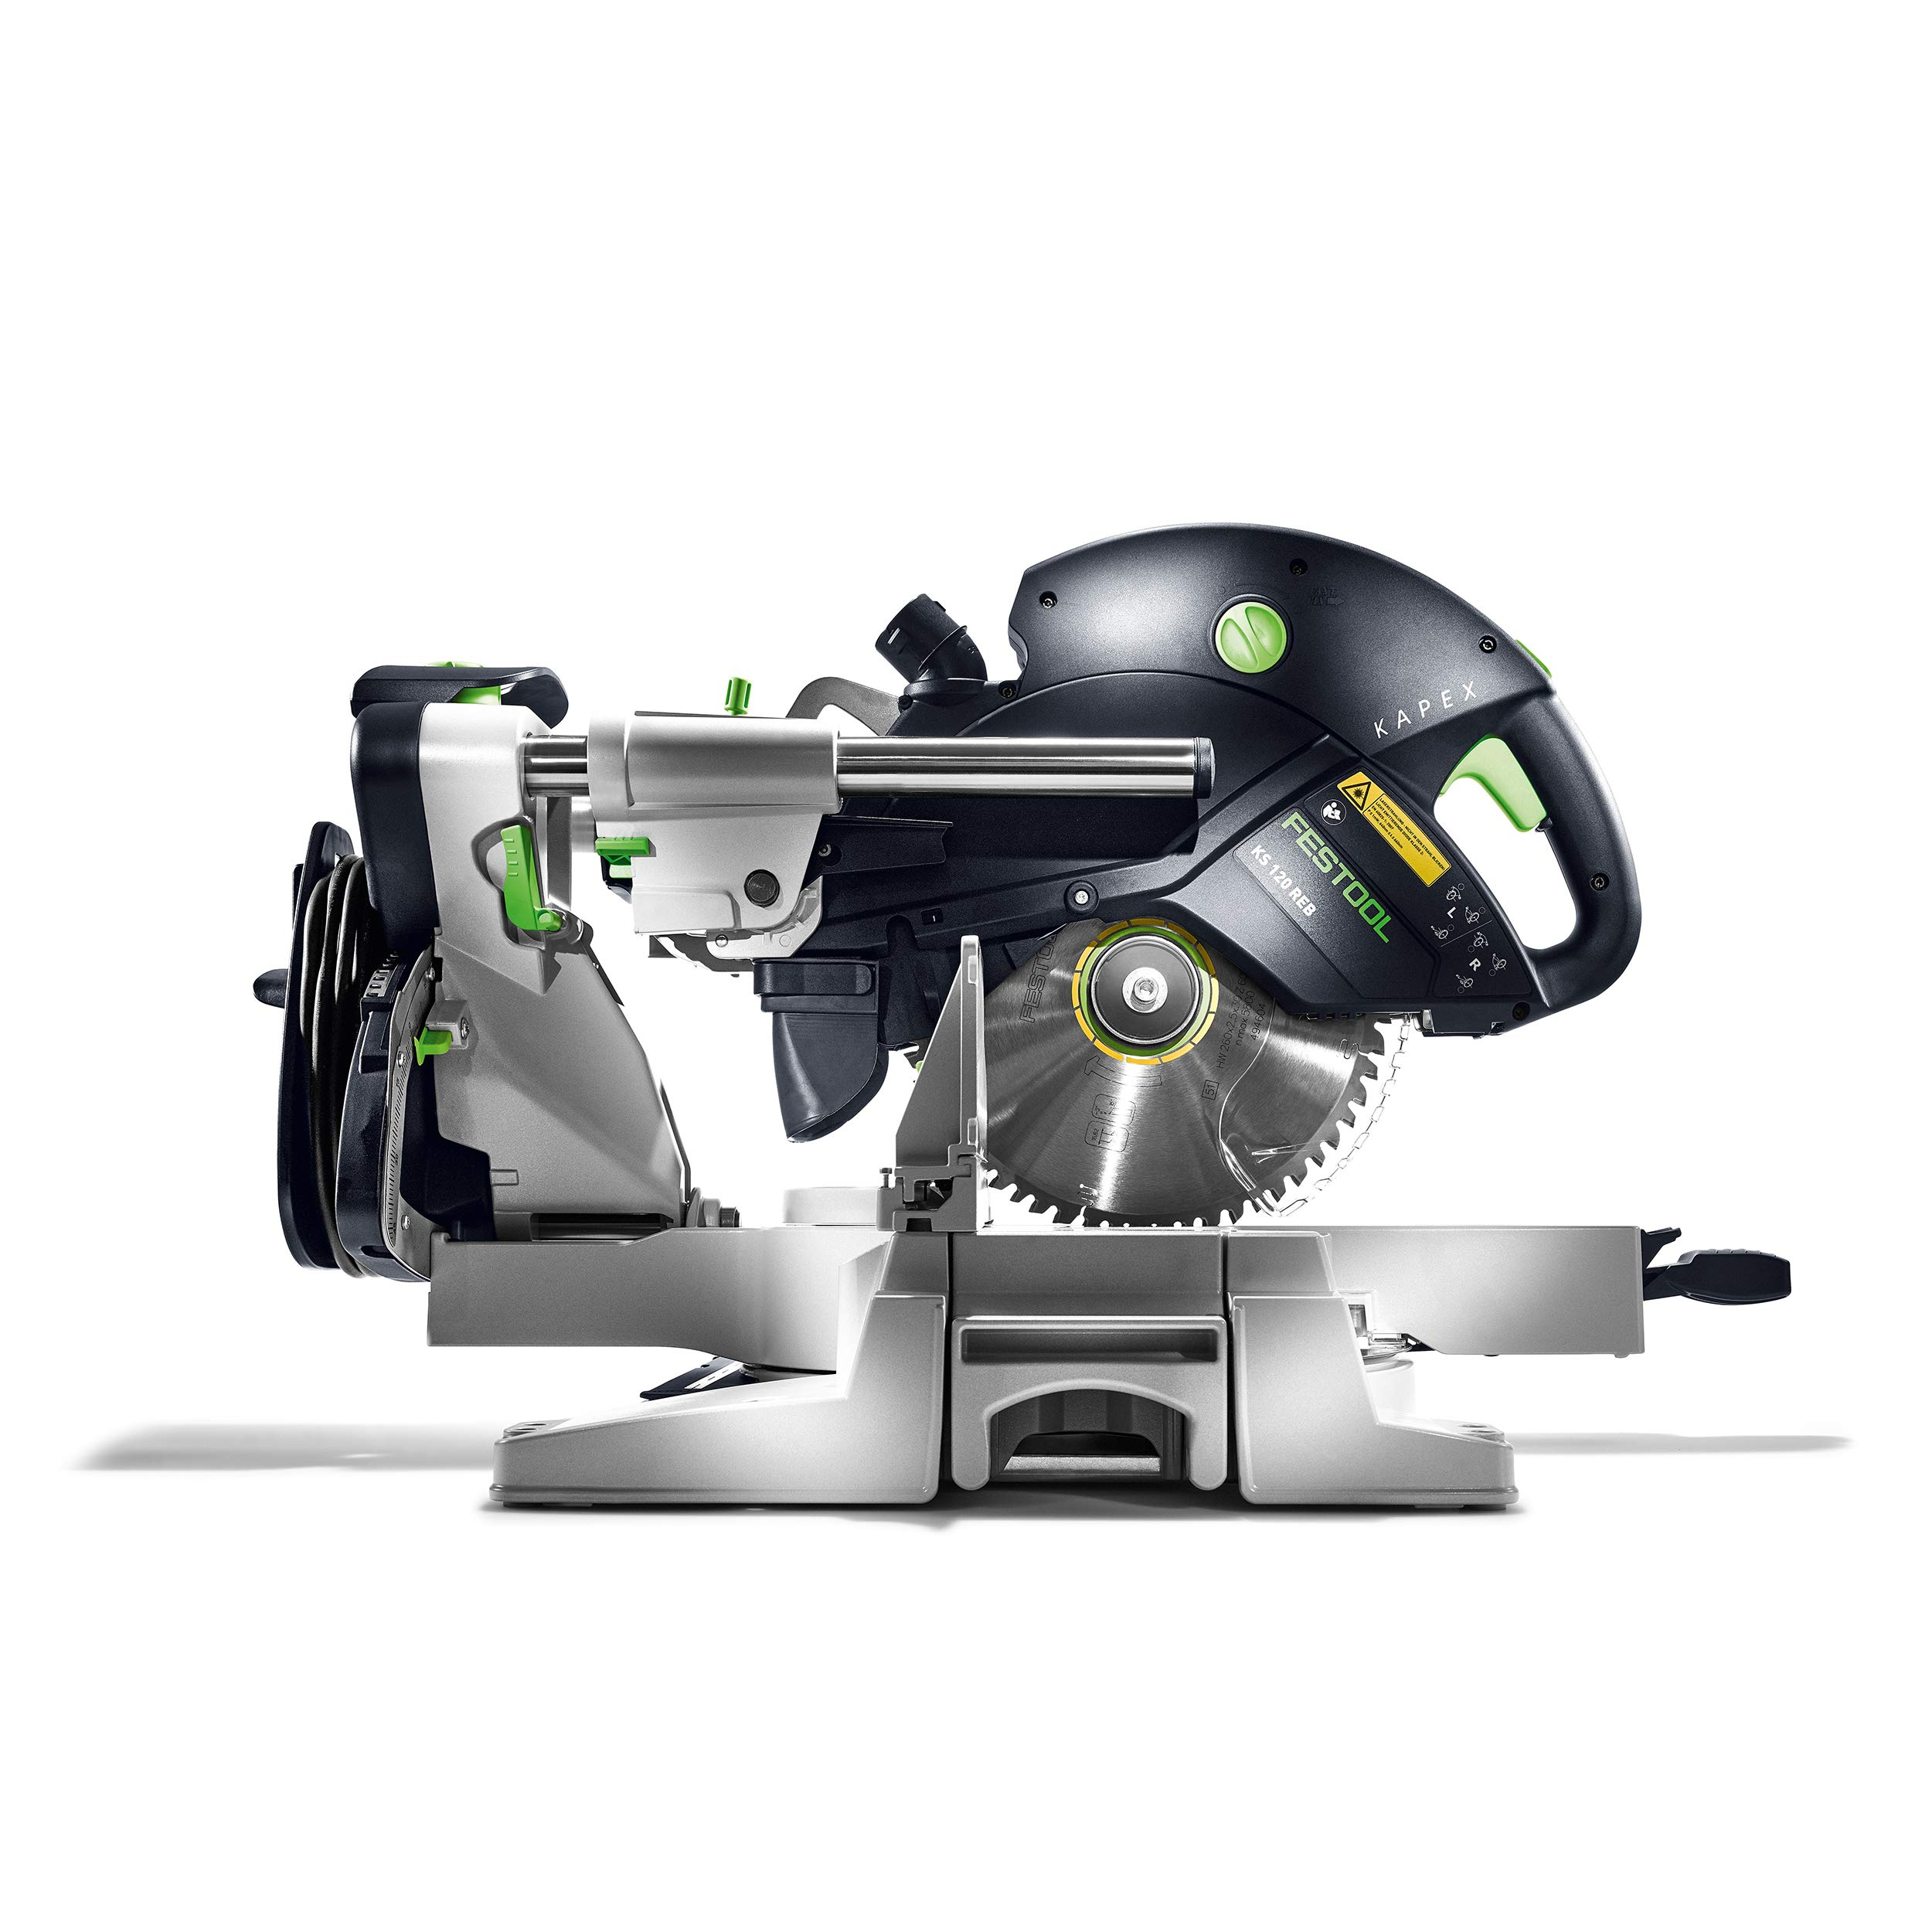 Festool 120 Sliding Compound Miter